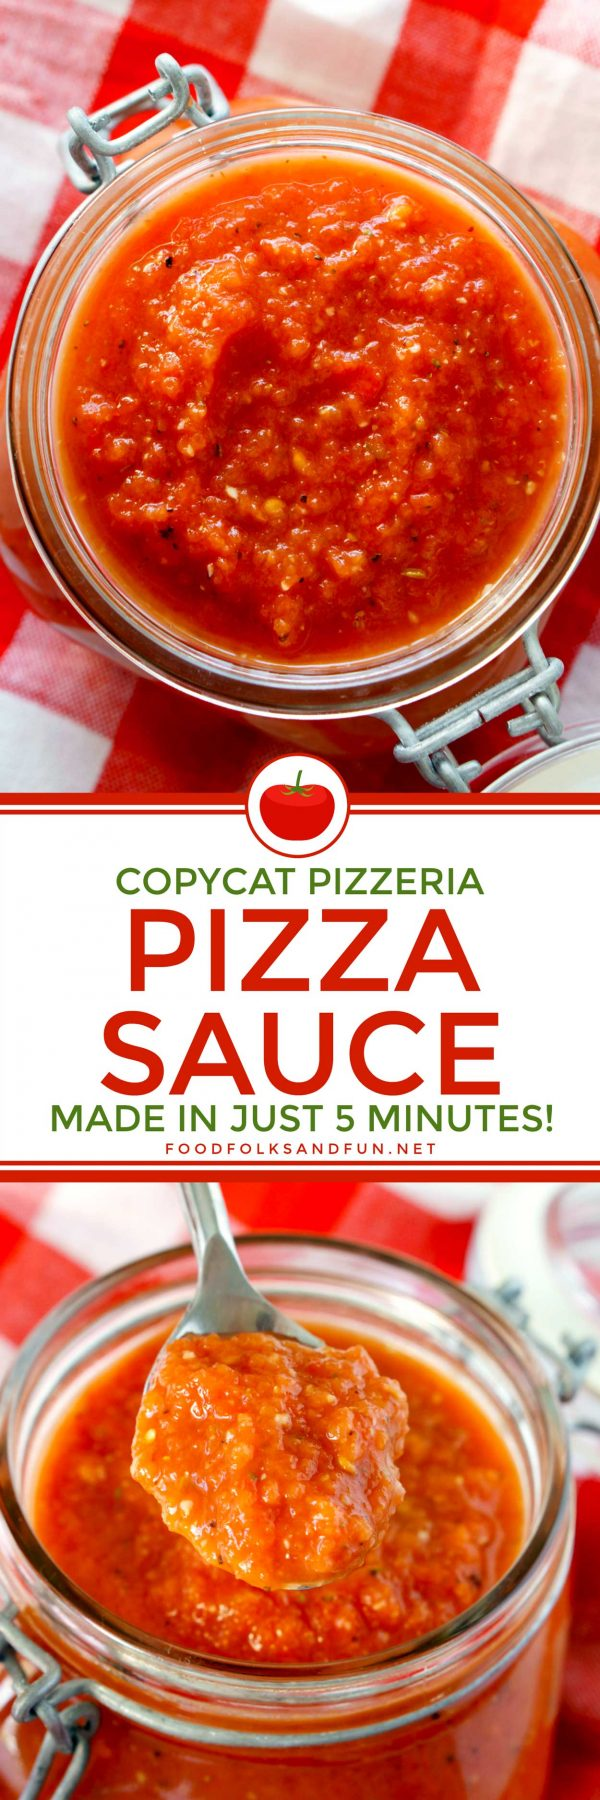 Copycat Pizzeria Pizza Sauce Recipe • Food, Folks and Fun